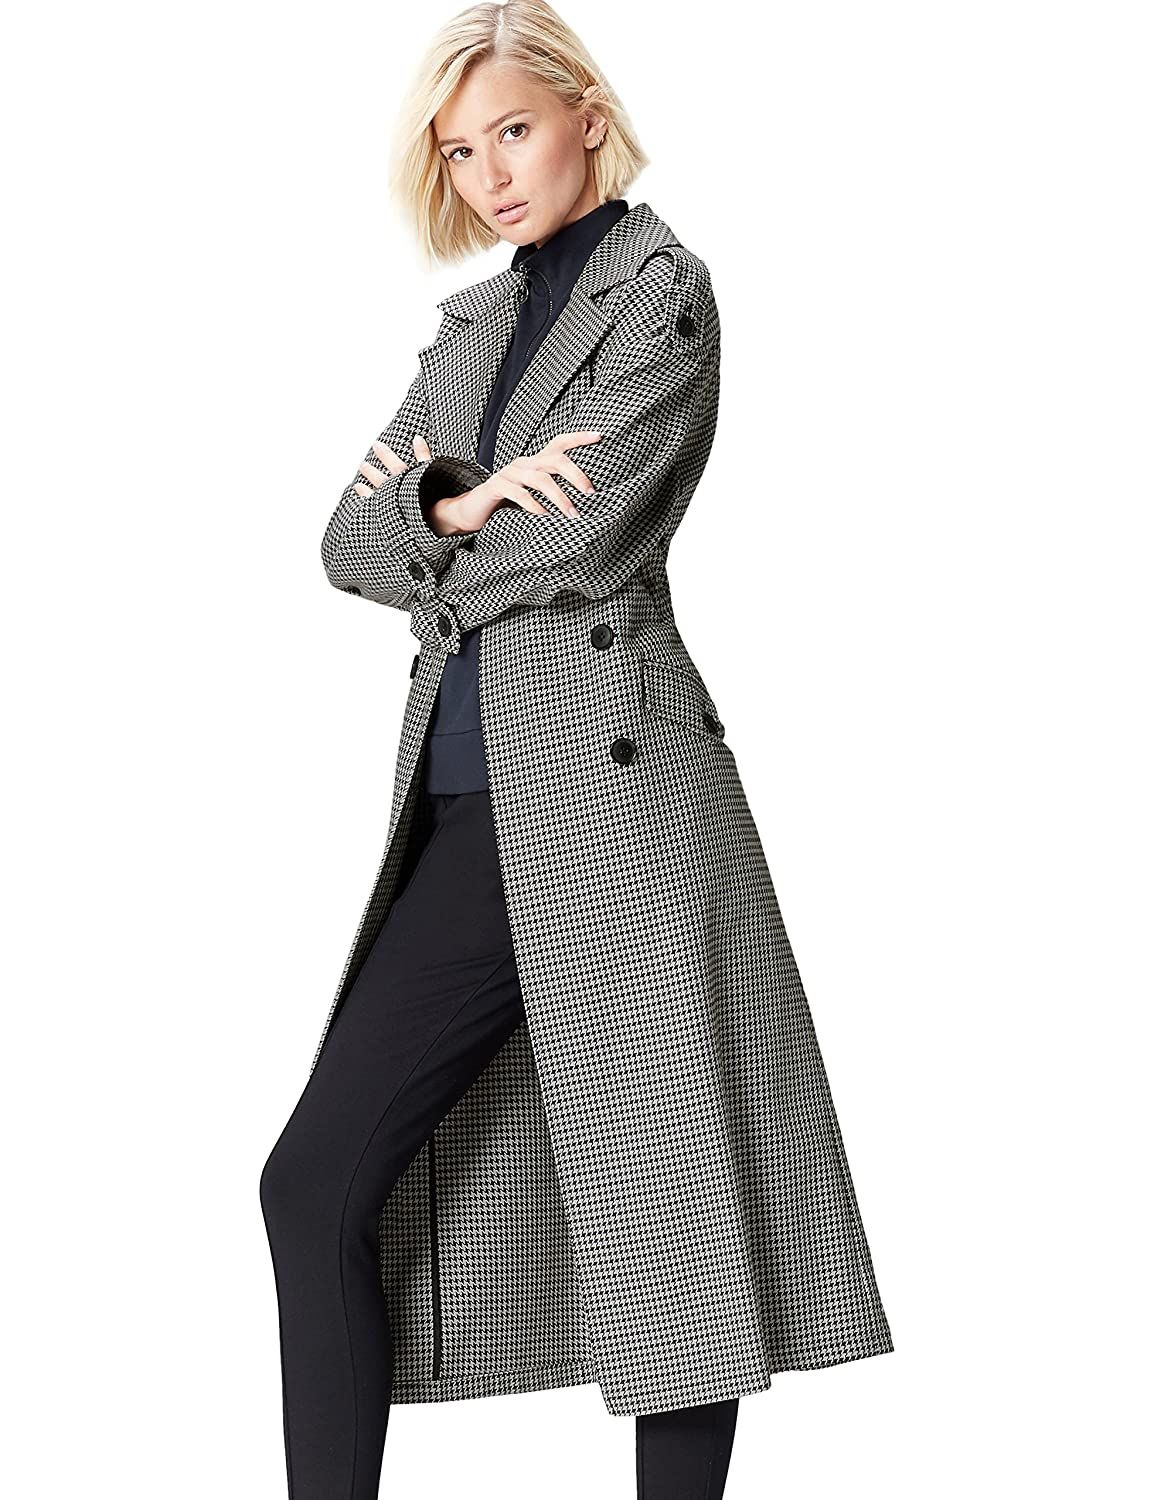 shoes for cheap Sales promotion outlet sale Amazon Brand - find. Women's Check Trench Coat